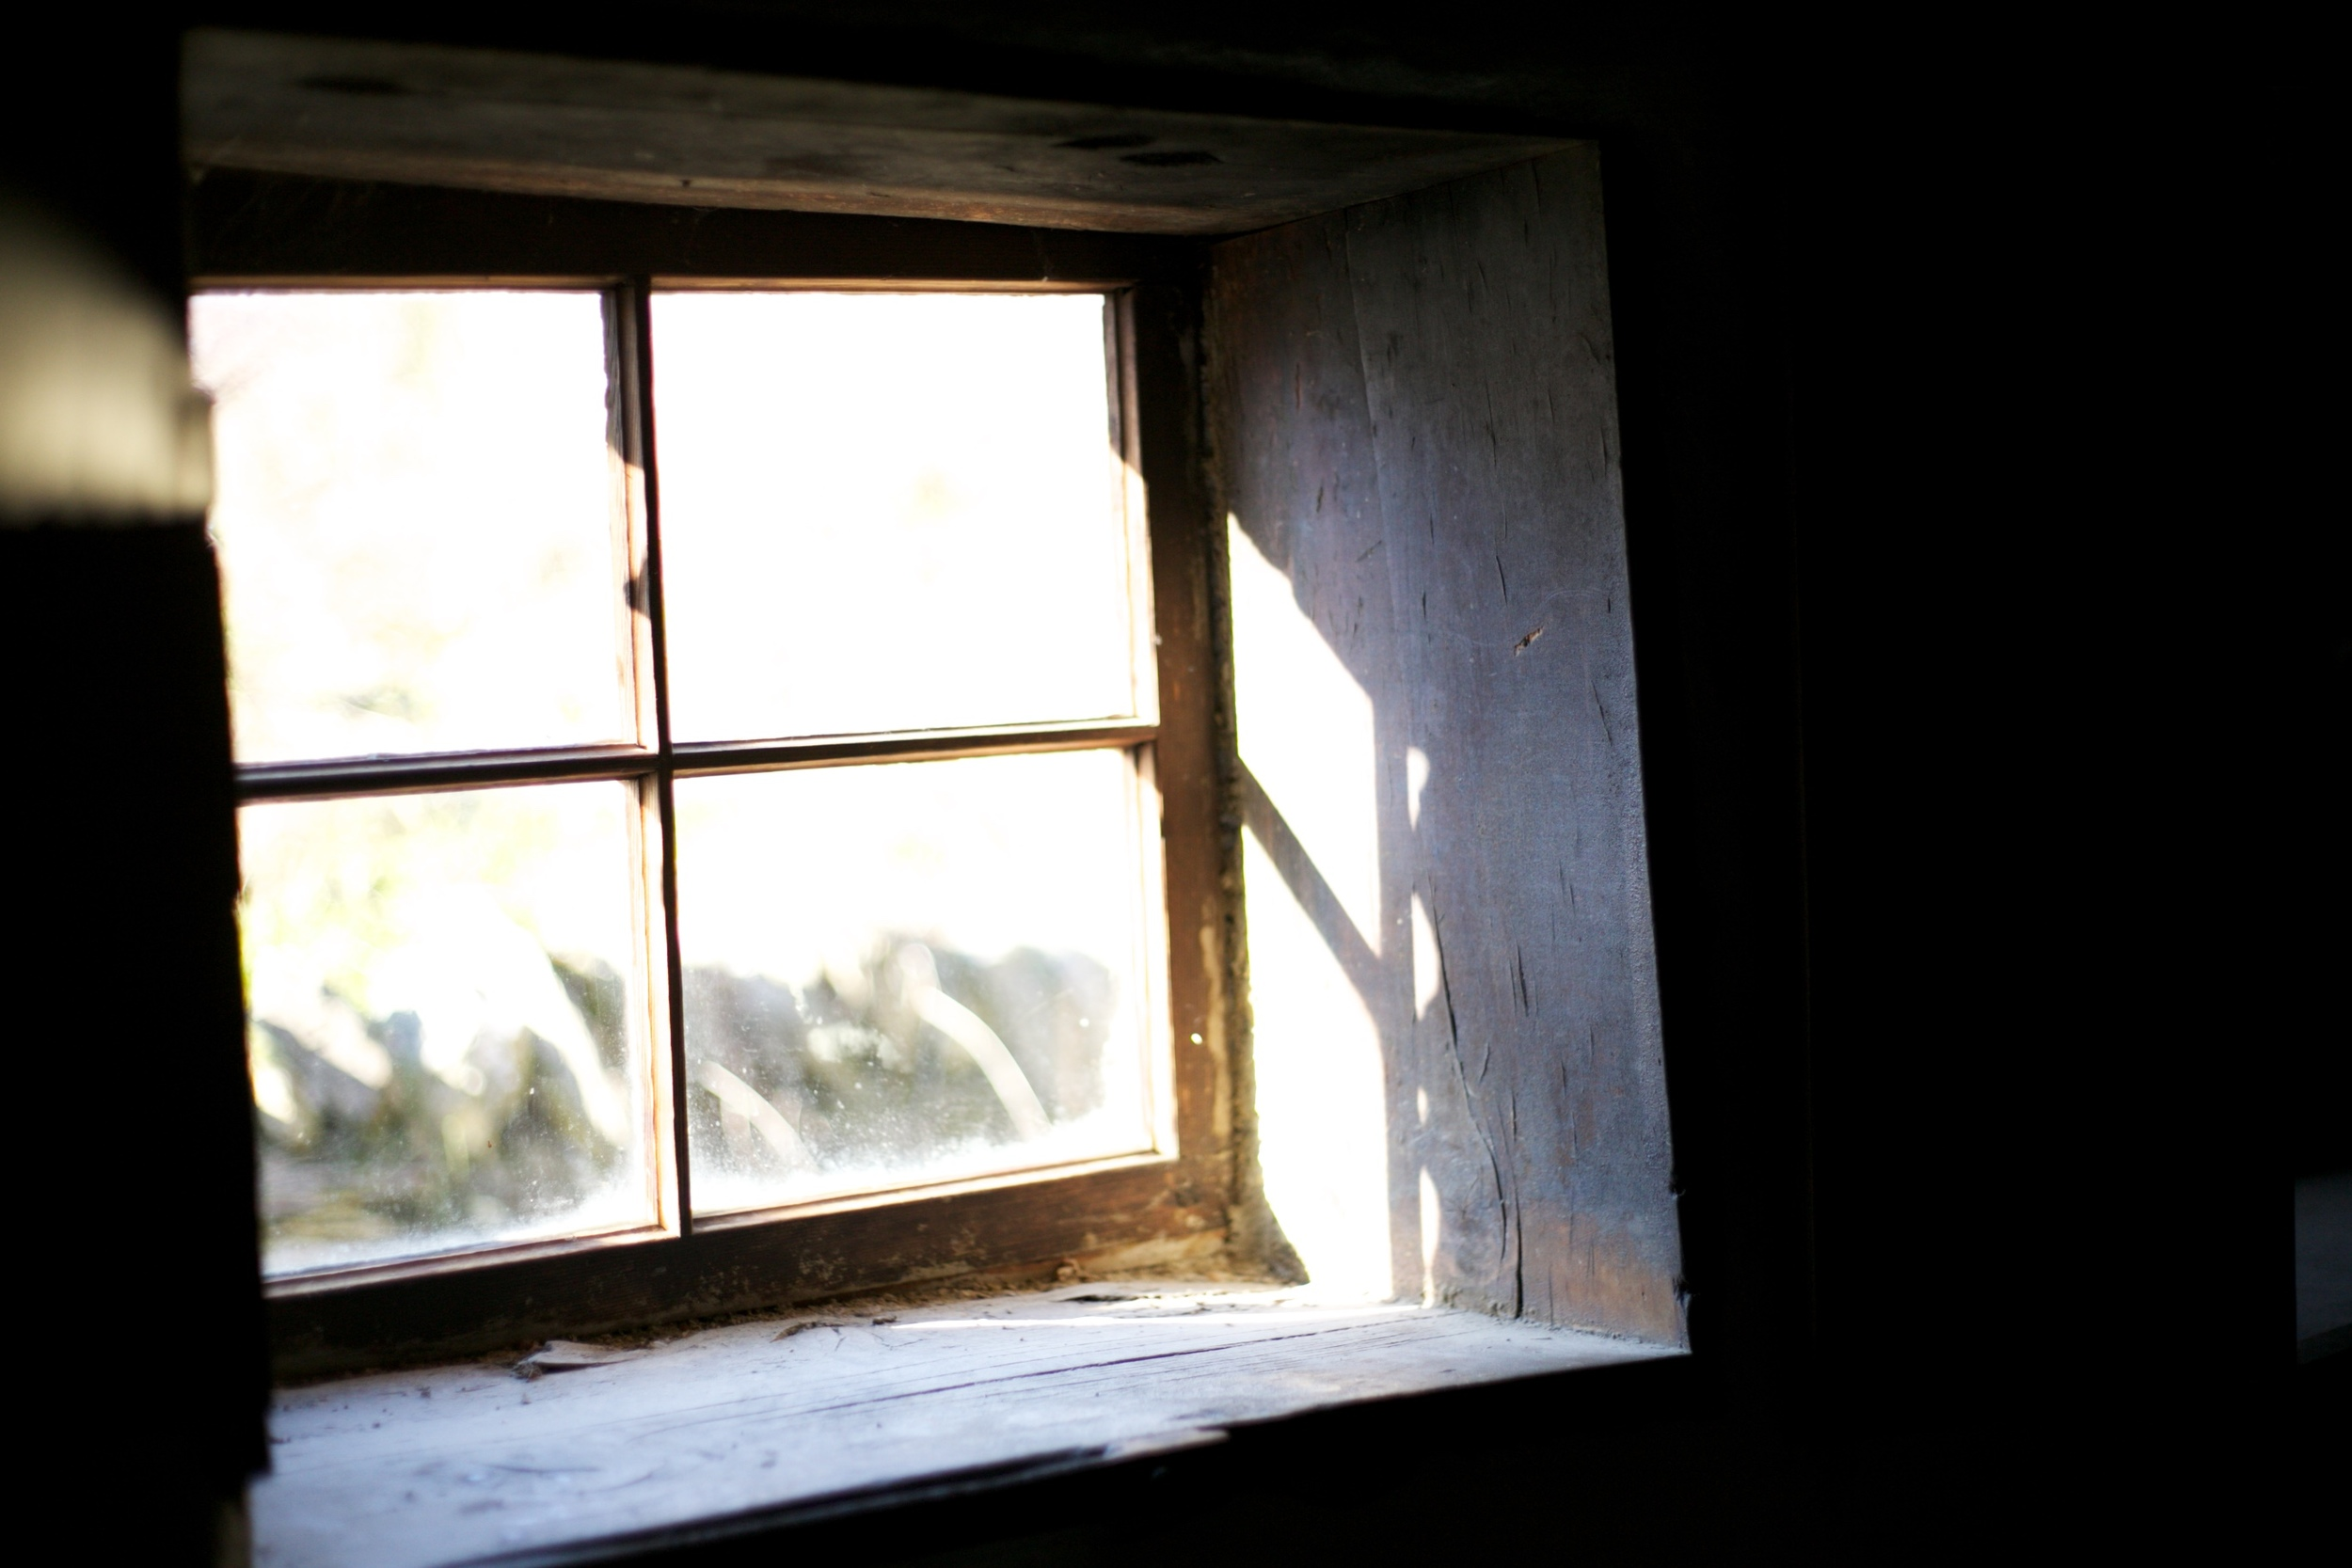 A real hobbit hole window in an old mining village NZ.